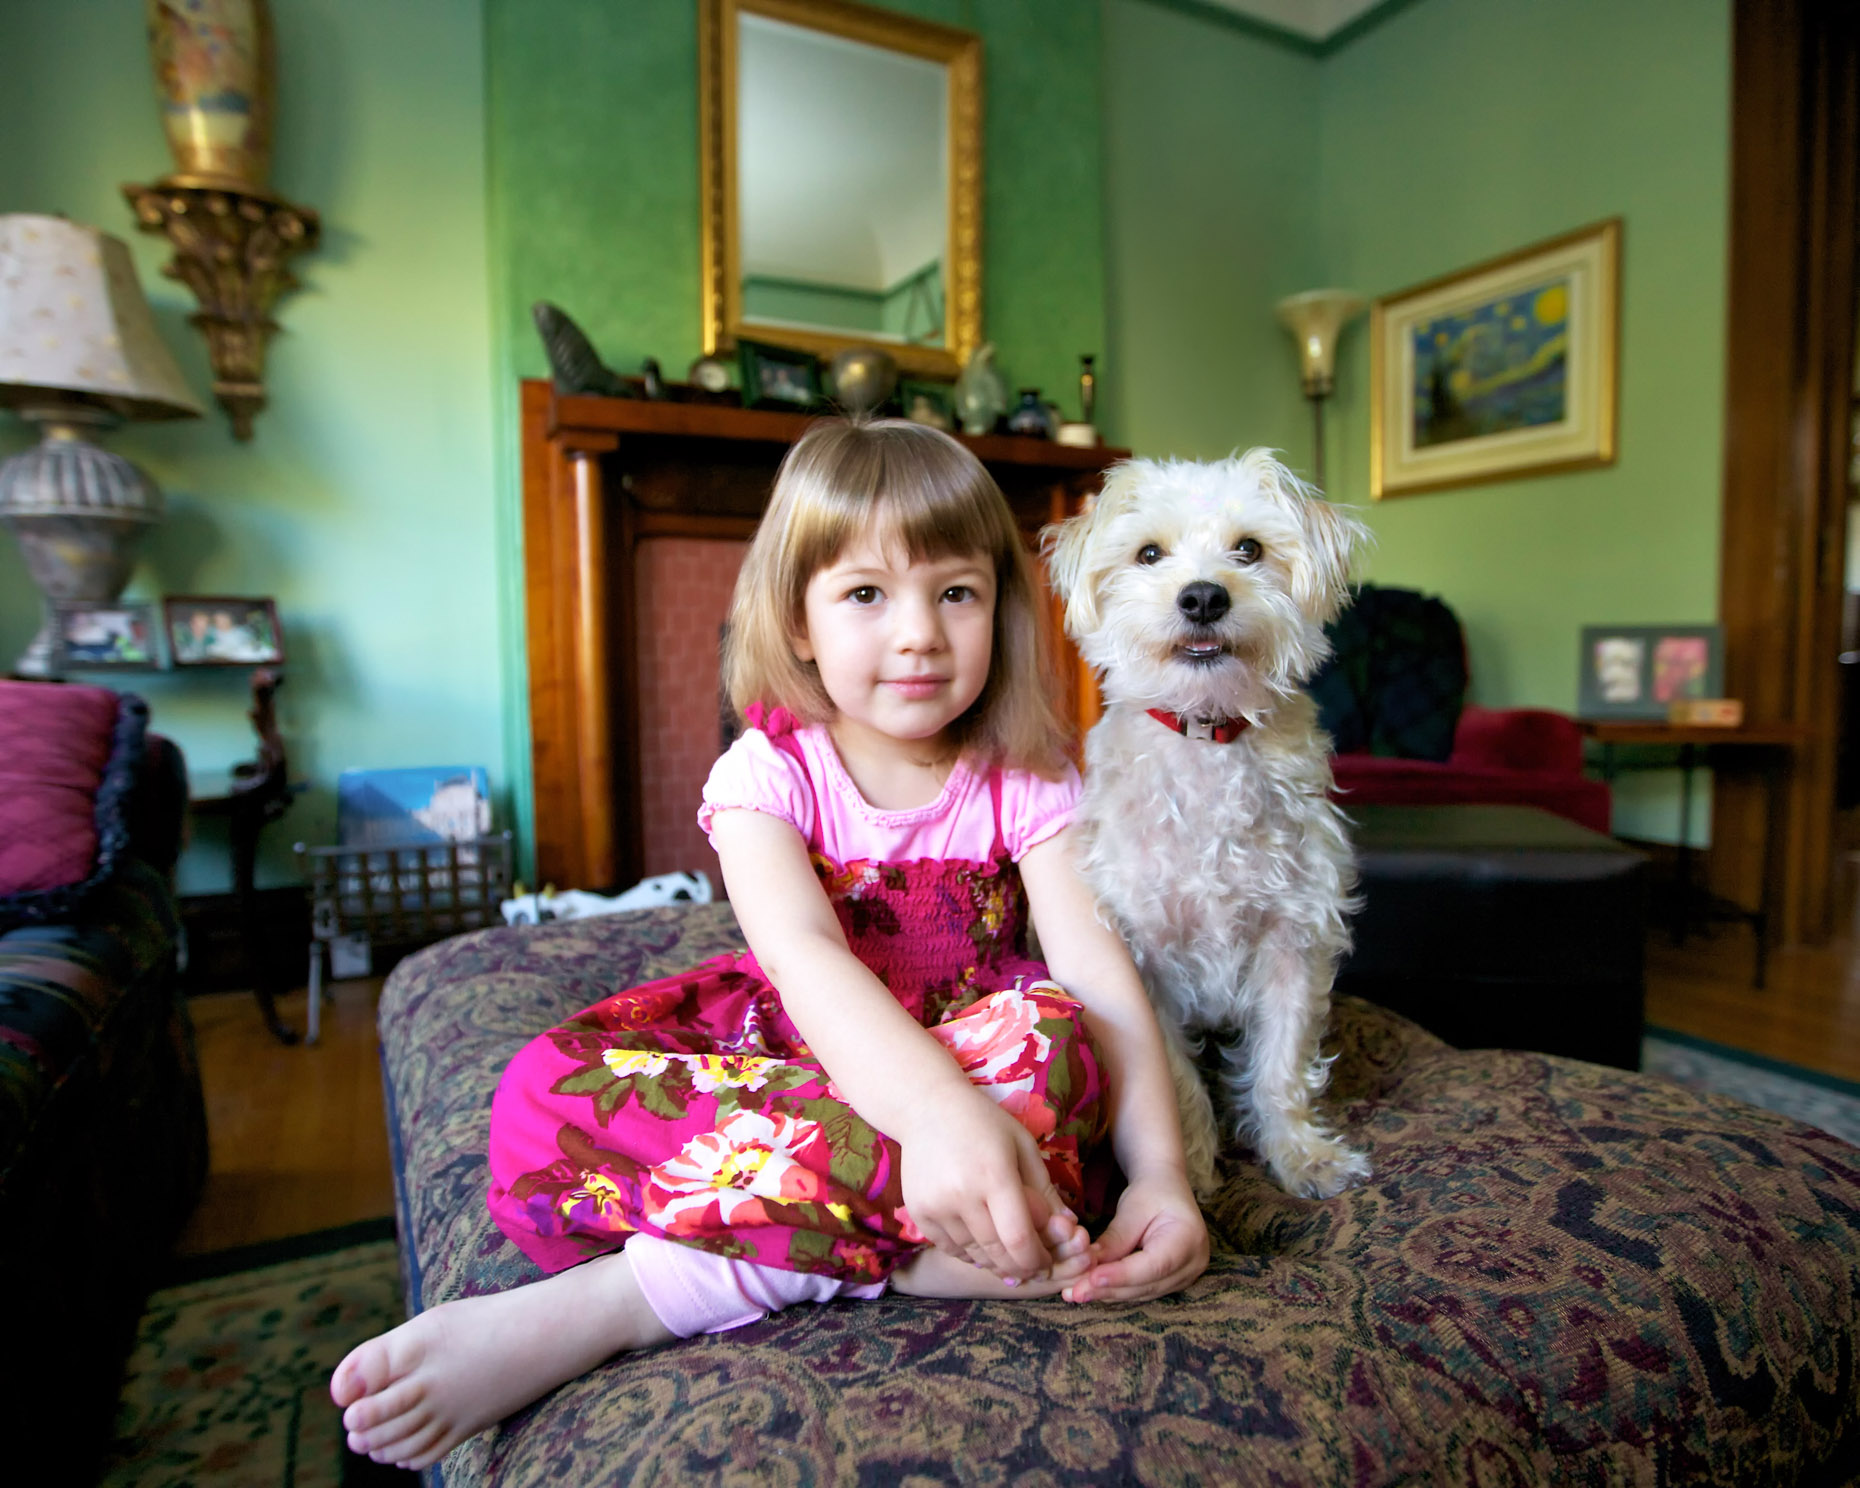 Pet and People Photography  | Little Girl with Dog in Room by Mark Rogers